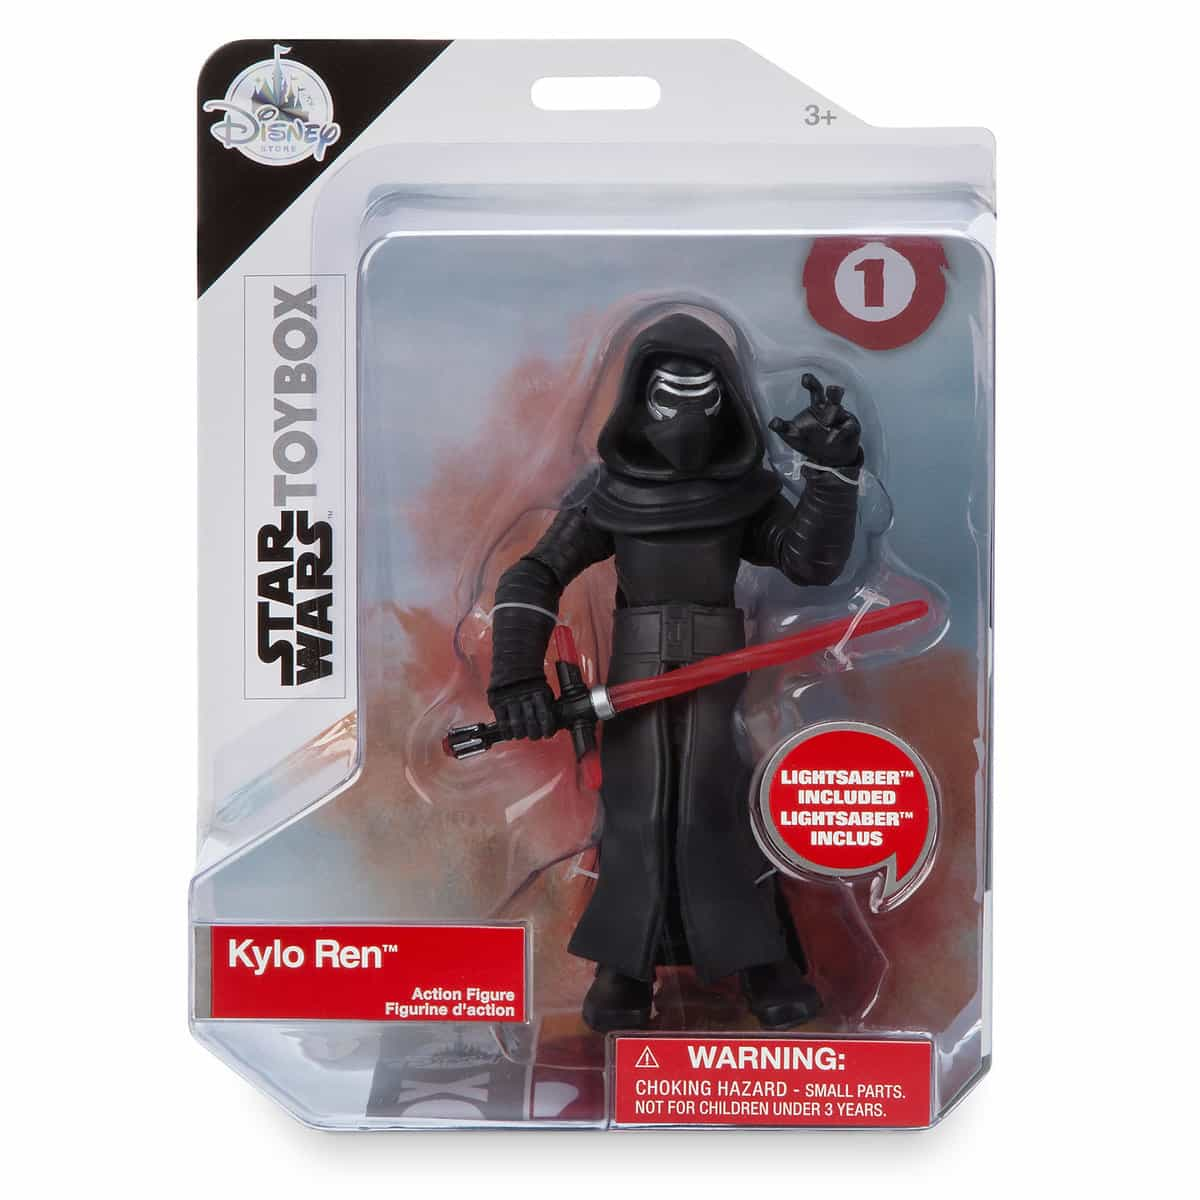 Star Wars Toybox Action Figures Out Now Diskingdomcom